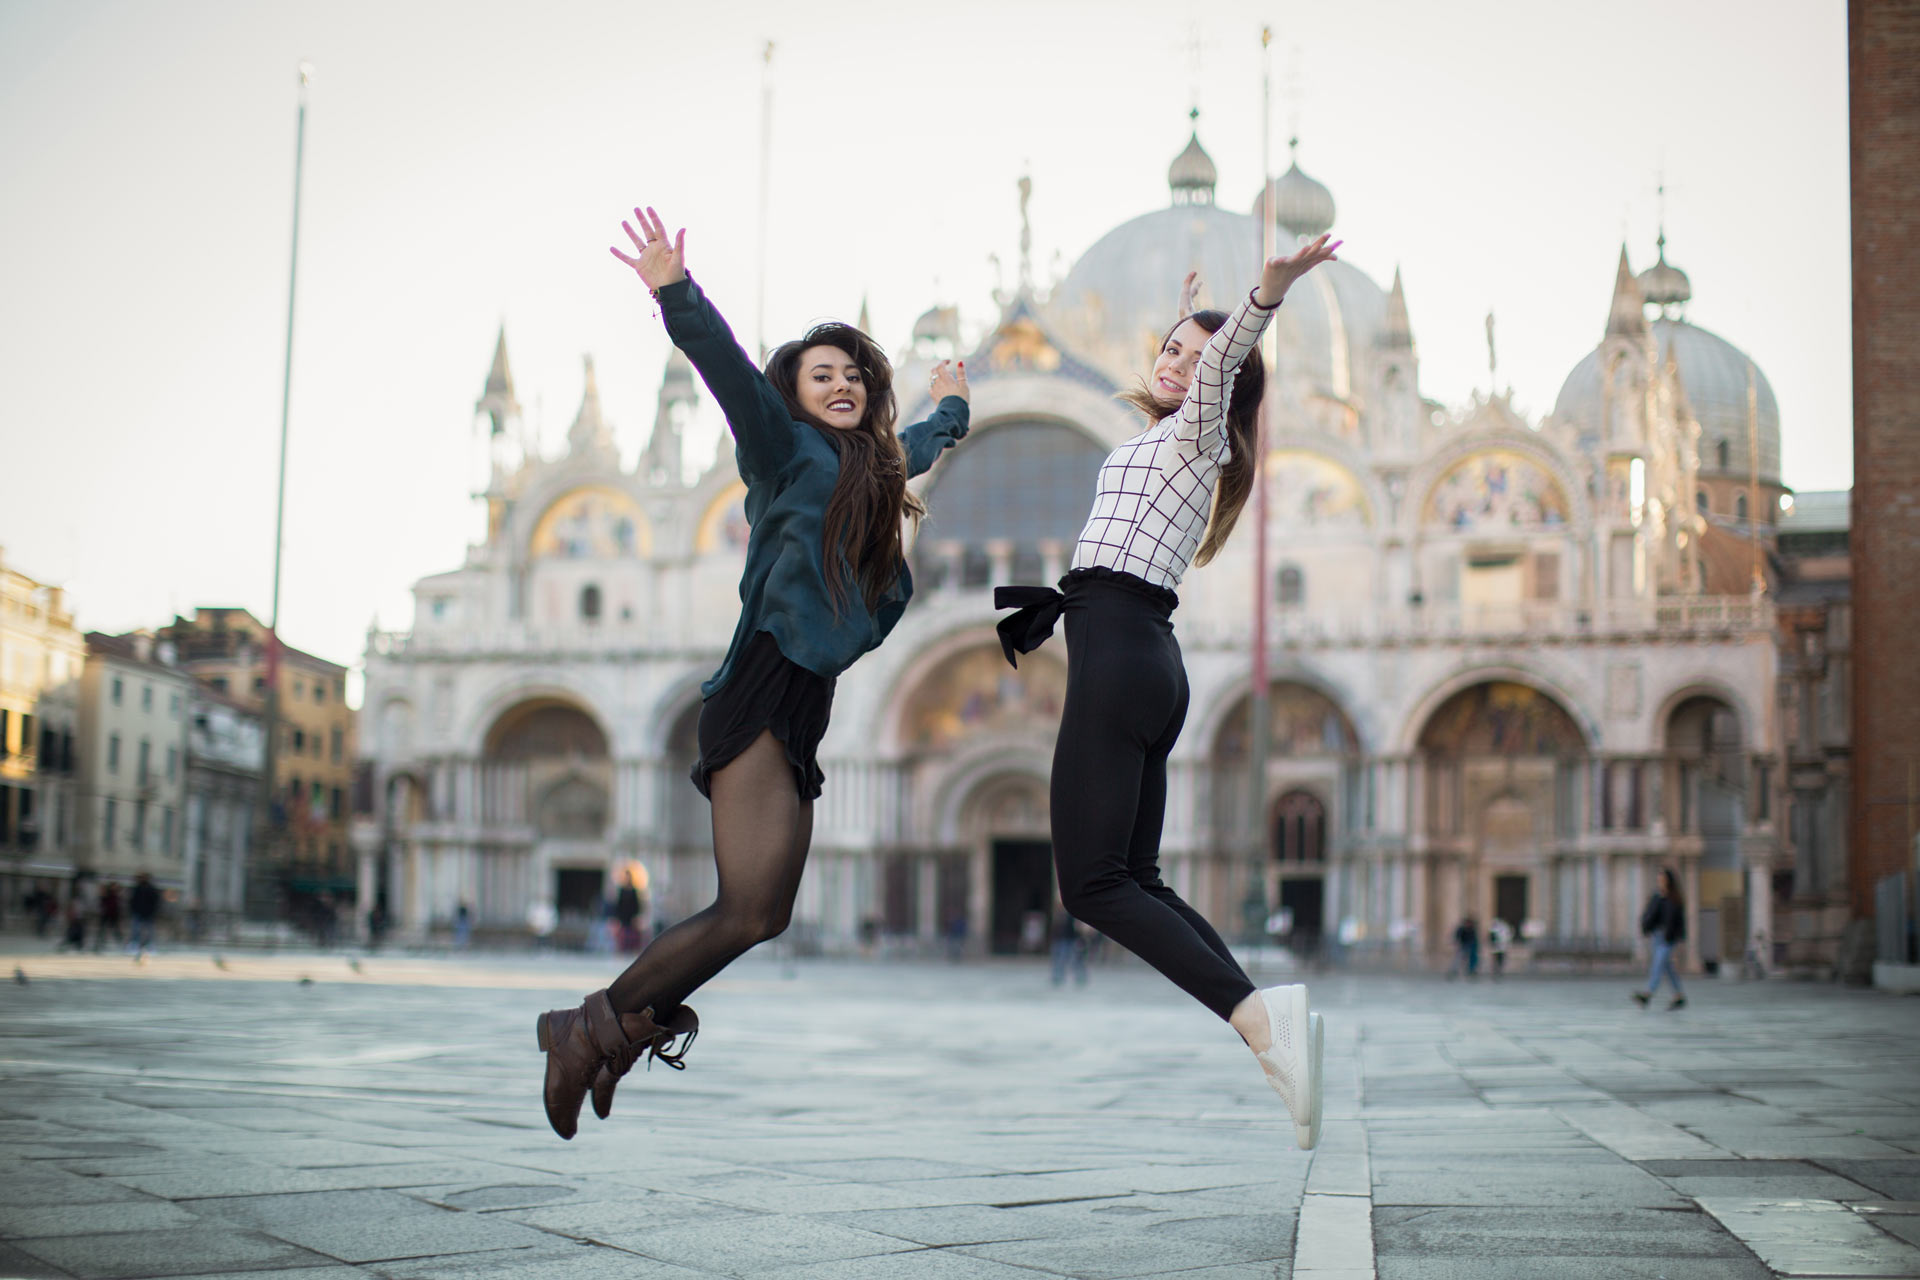 Ashley-Meagan-portrait-photo-shooting-sunrise-piazza-san-marco--basilica-Venezia-Venice-happiness-1